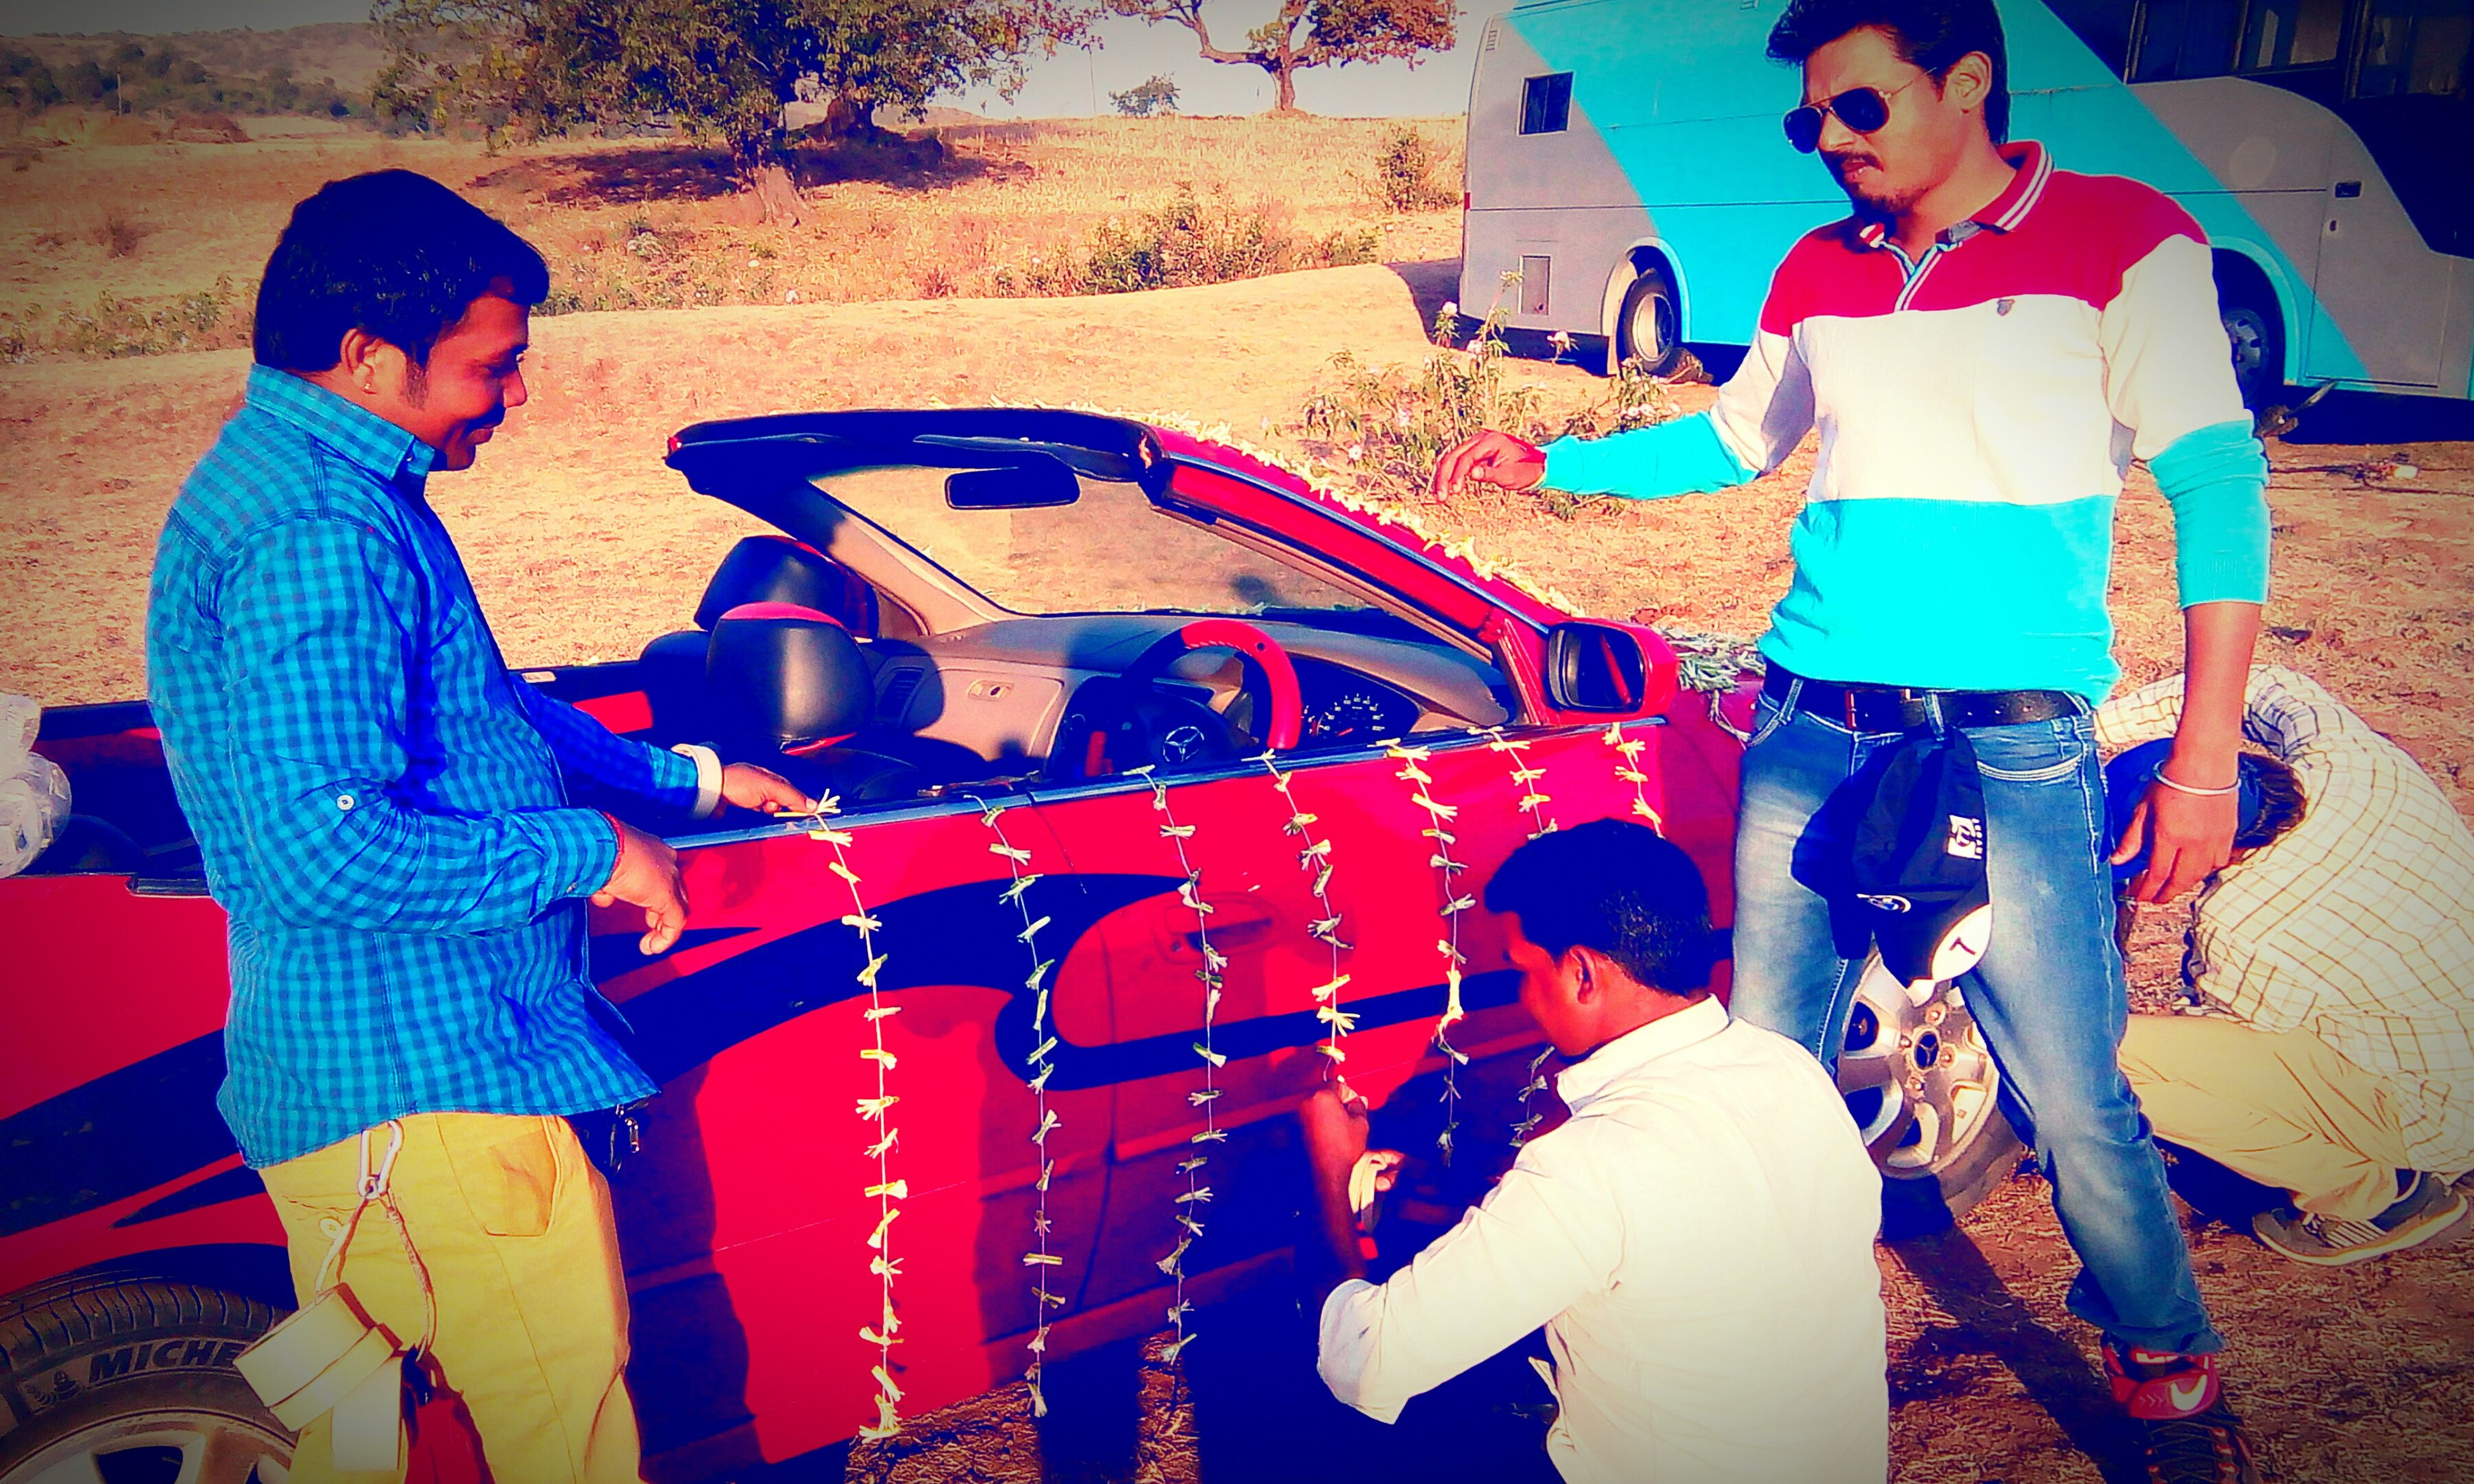 Working on set... This Car Ready for shoot